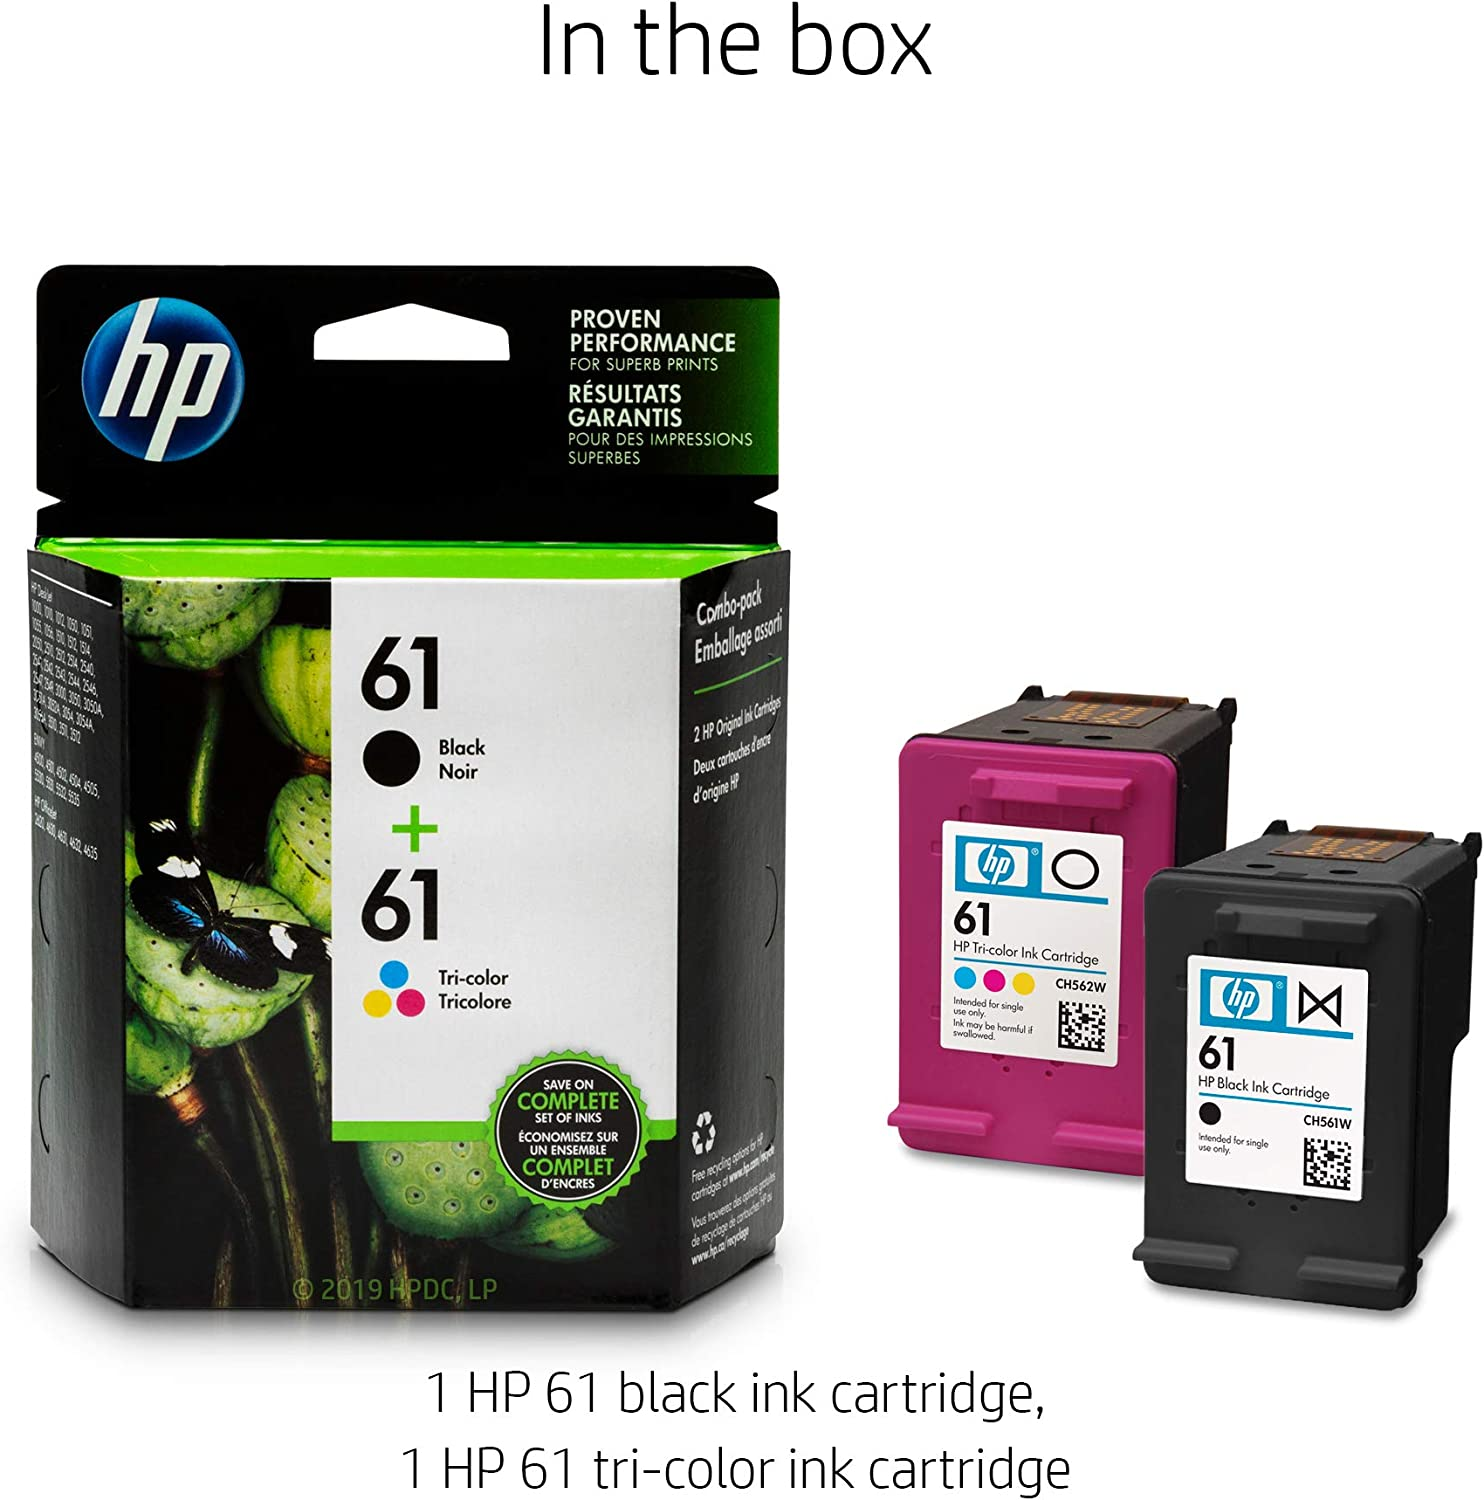 Amazon.com: Cartuchos de tinta originales HP 61 negro y ...